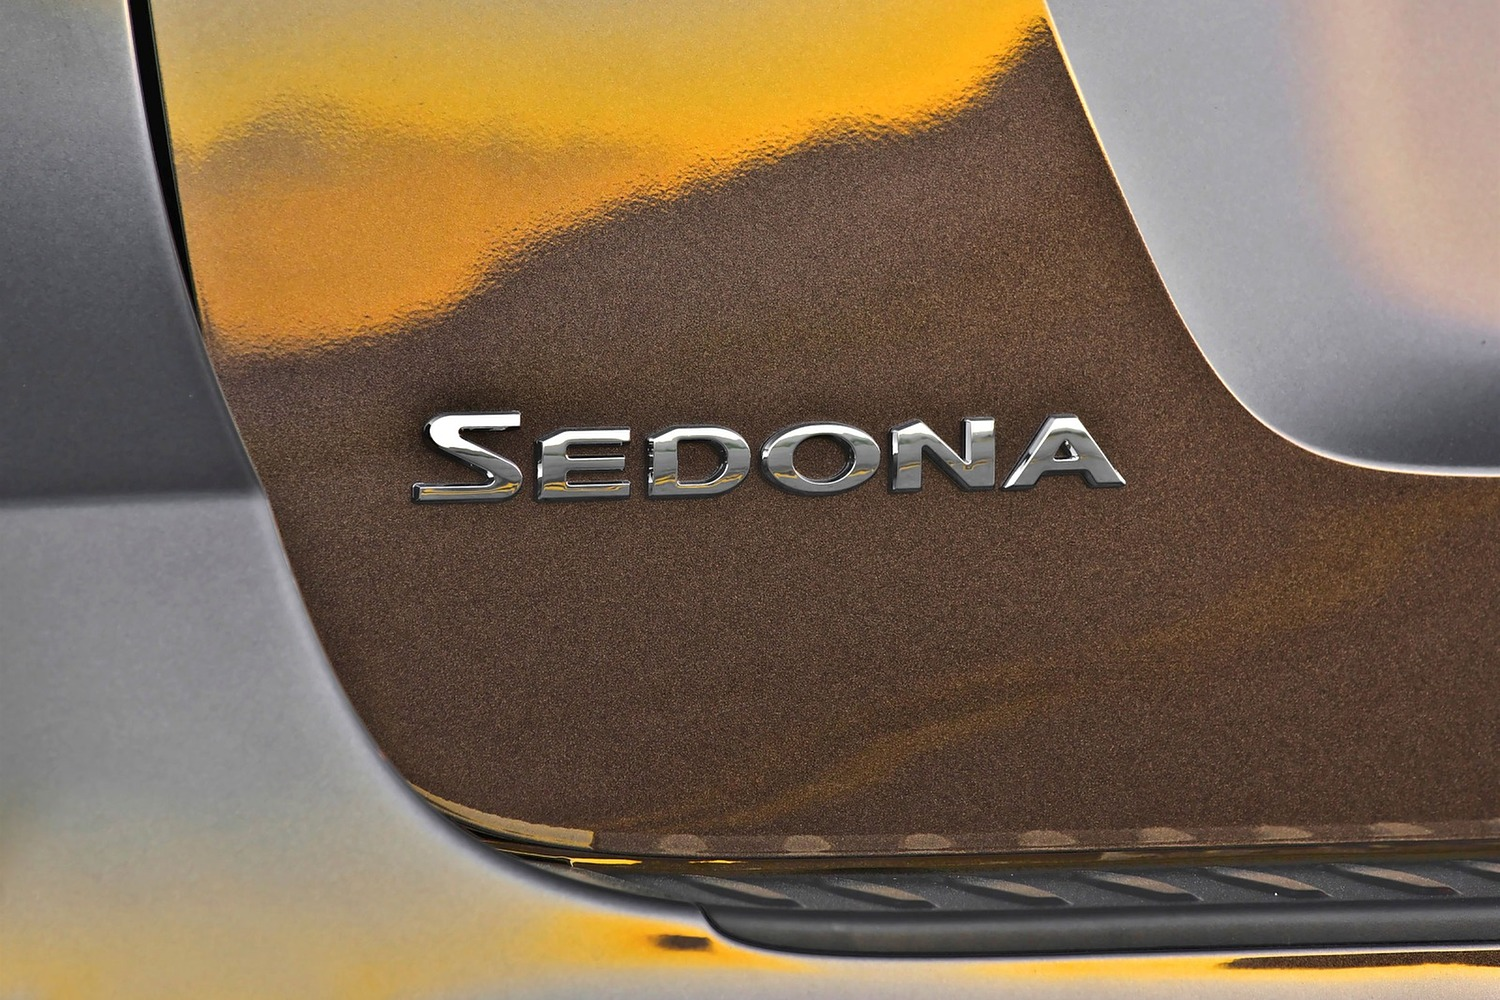 Kia Sedona SX Limited Passenger Minivan Rear Badge (2016 model year shown)